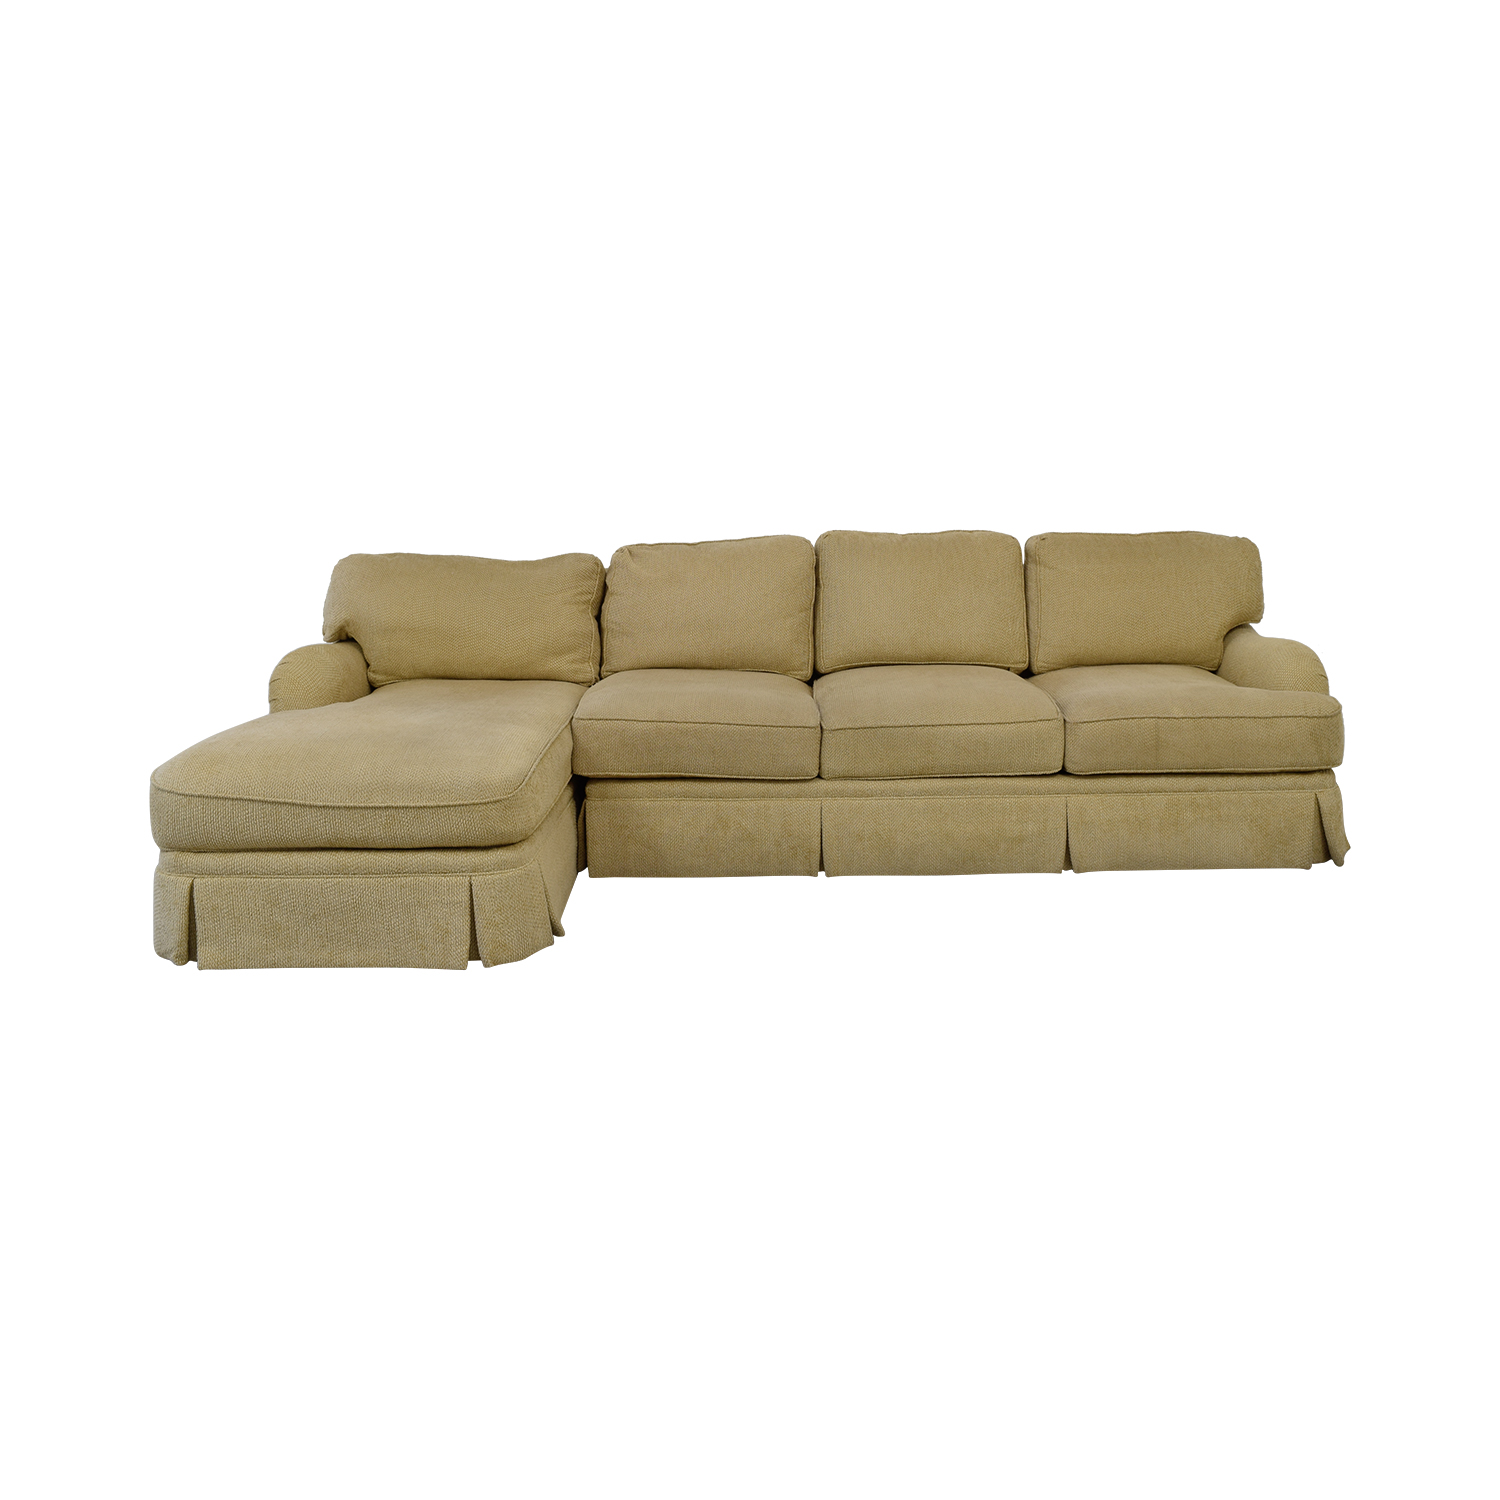 buy C R Laine Beige Skirted Chaise Sectional C R Laine Sectionals